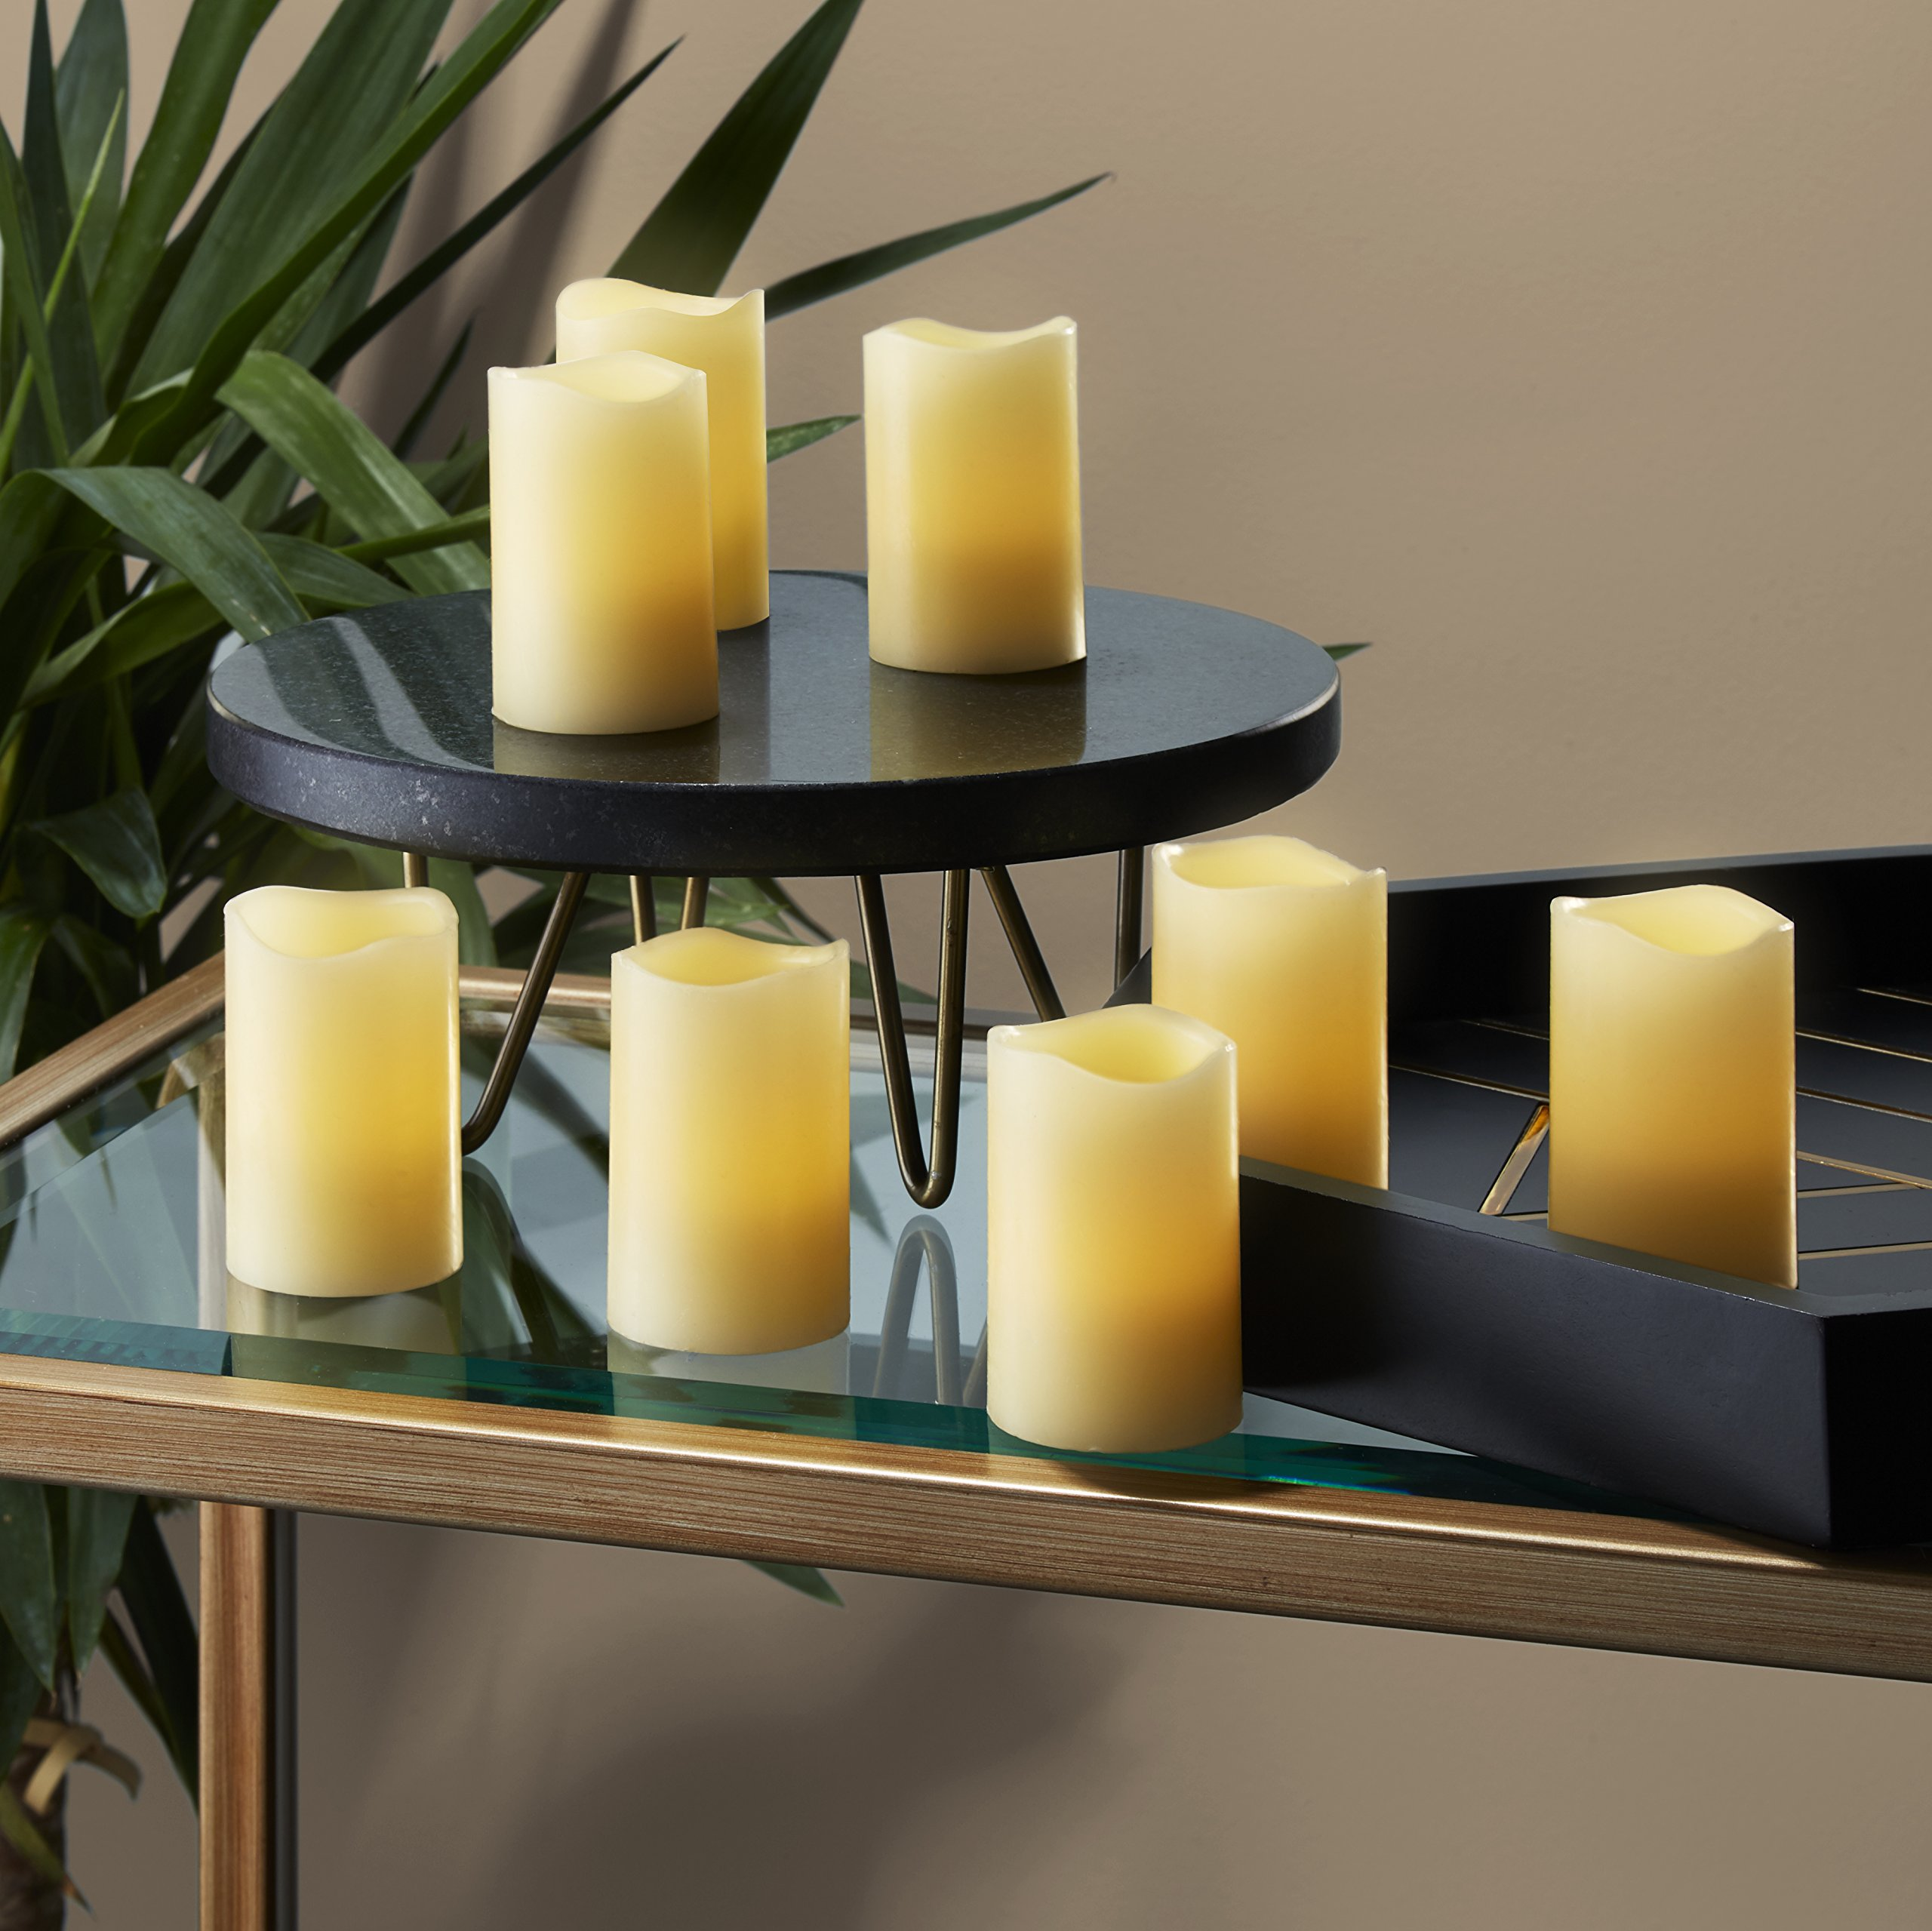 8 Ivory 3'' Flameless Votives with Warm White LEDs, Mini Wax Candles, Melted Edge, Batteries Included by LampLust (Image #1)